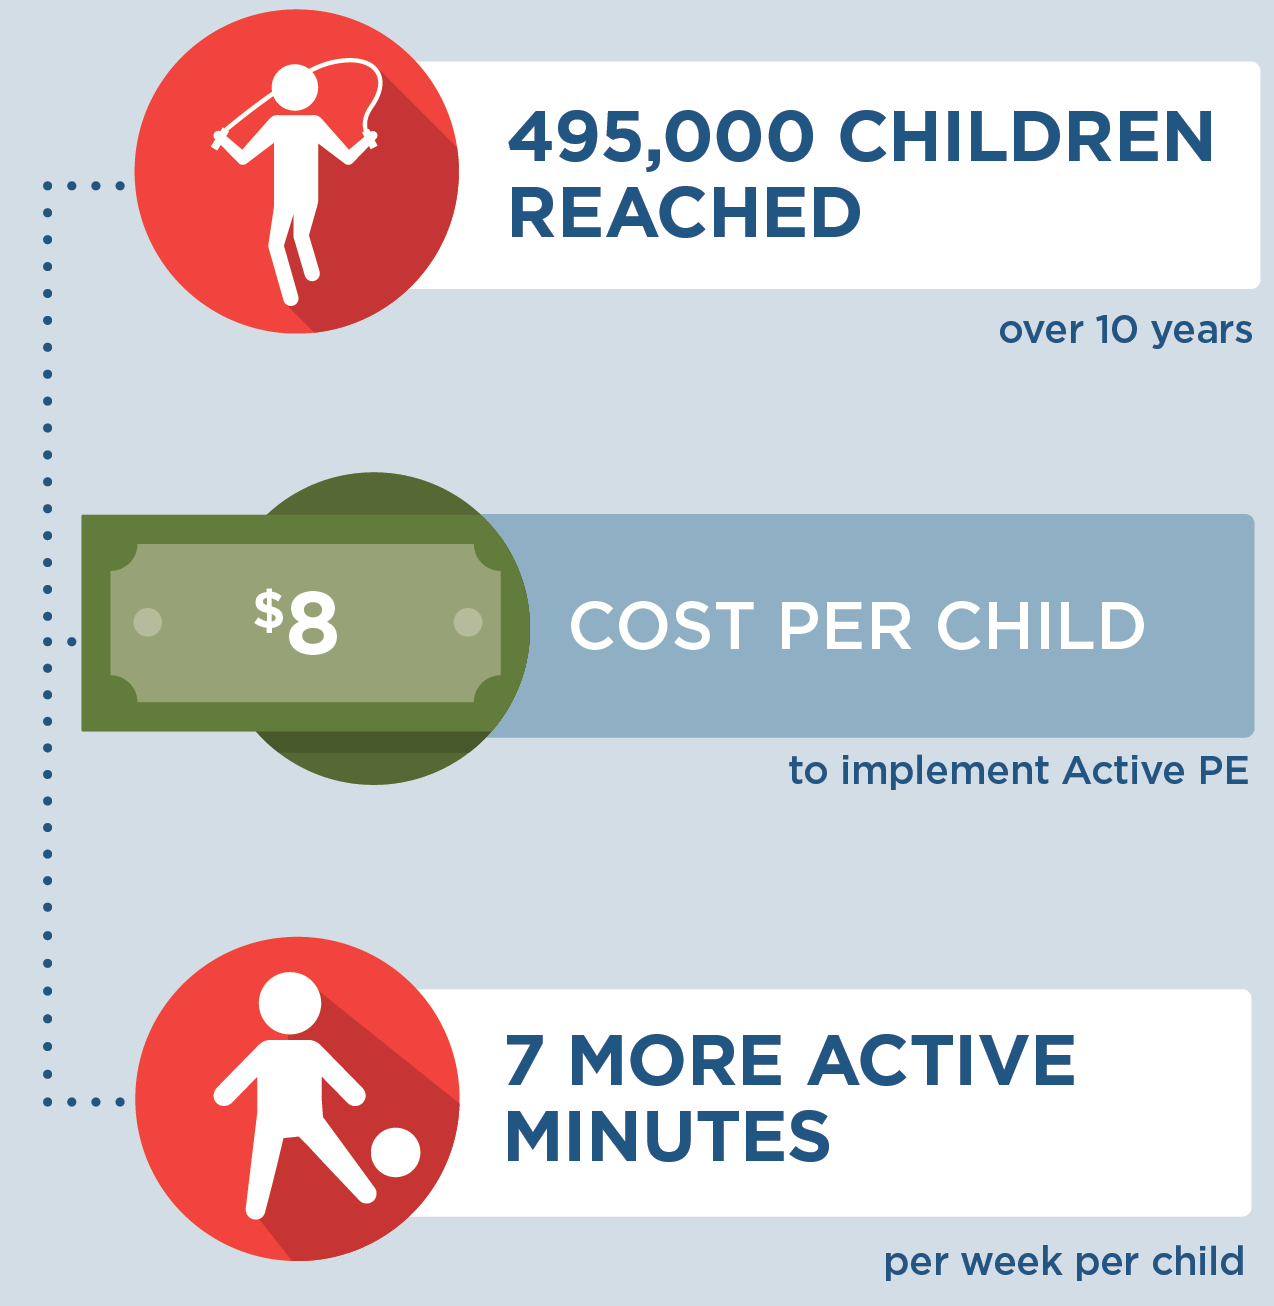 If Active PE was implemented in Iowa, then by the end of 2030, 495,000 children would be reach over 10 years. It would cost $8 per child to implement Active PE. Each child would get 7 more active minutes per week.